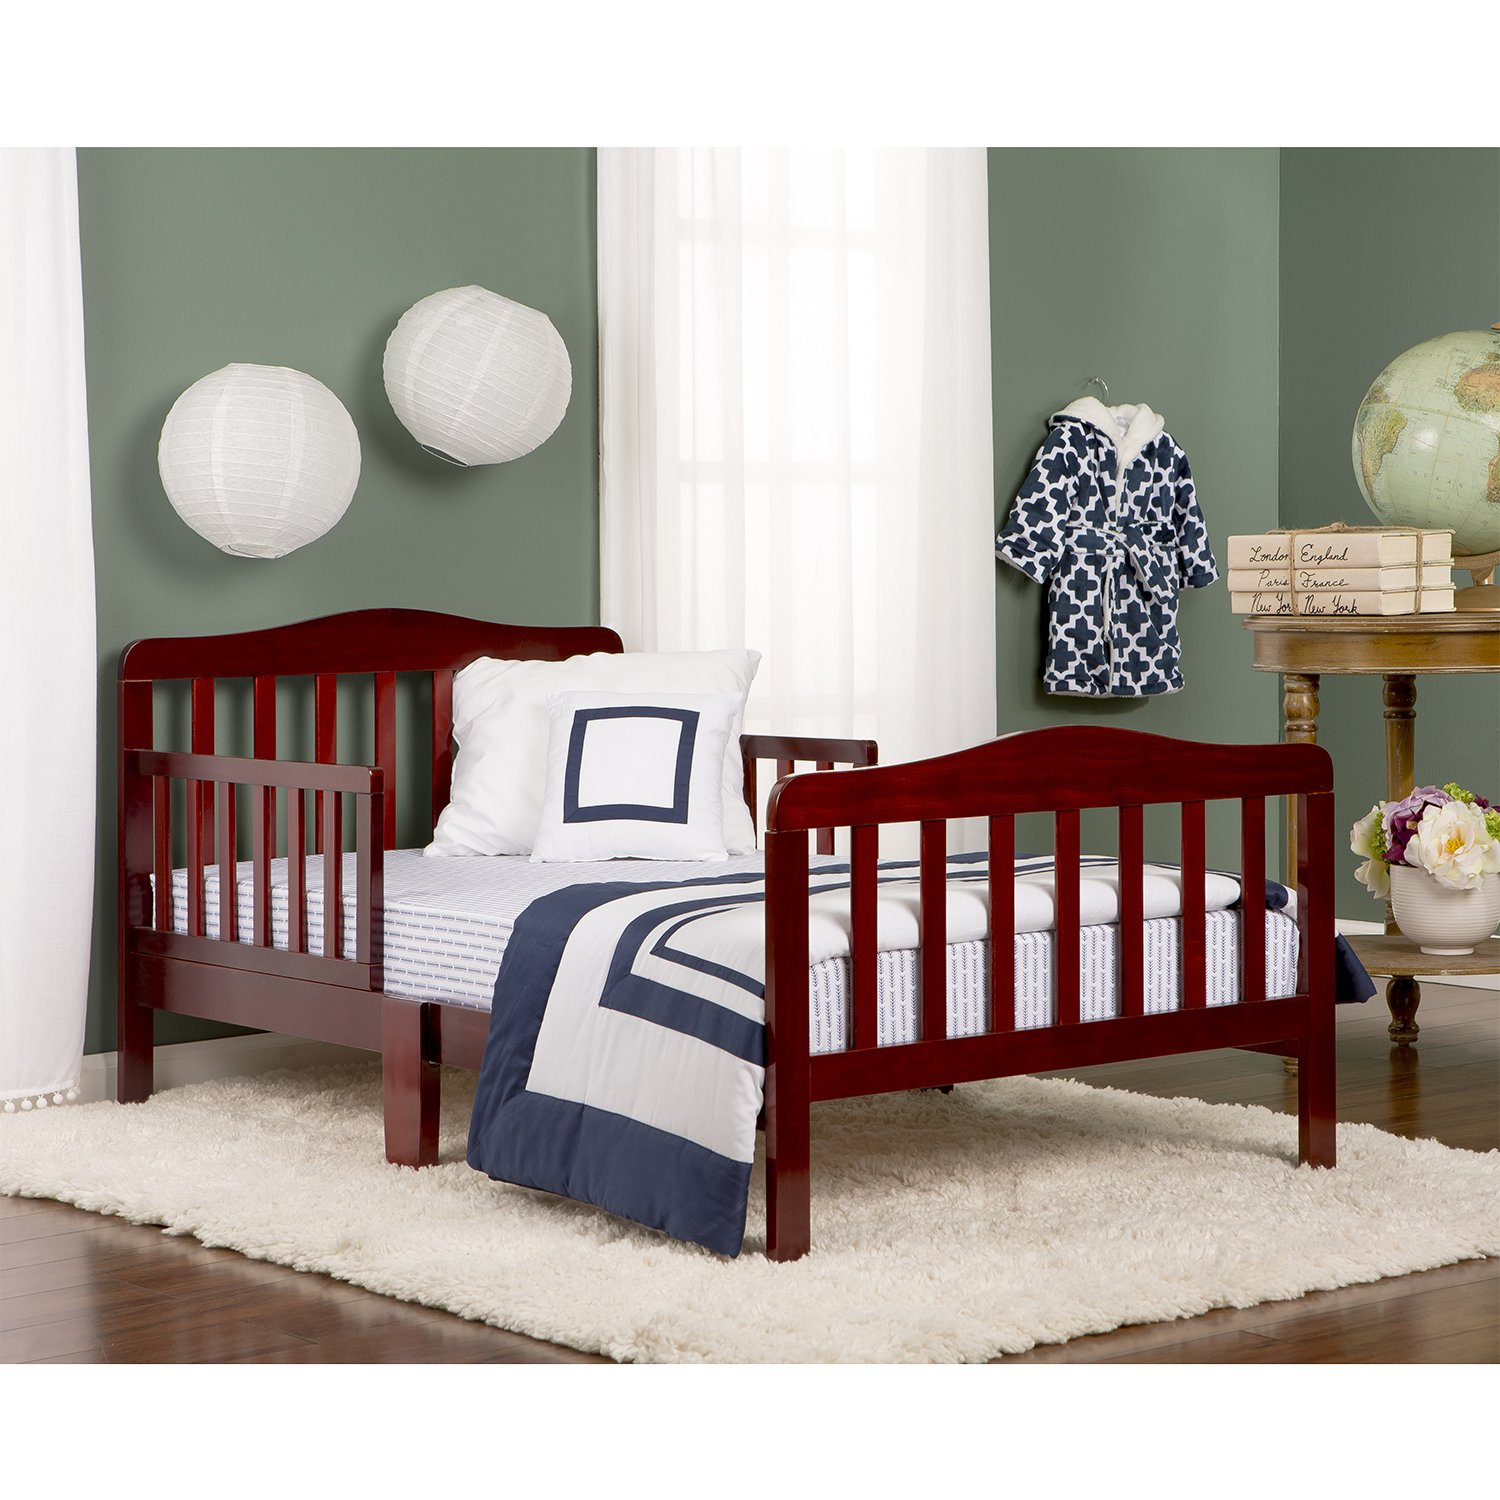 Dream On Me Classic Toddler Bed Cherry Amazonca Baby